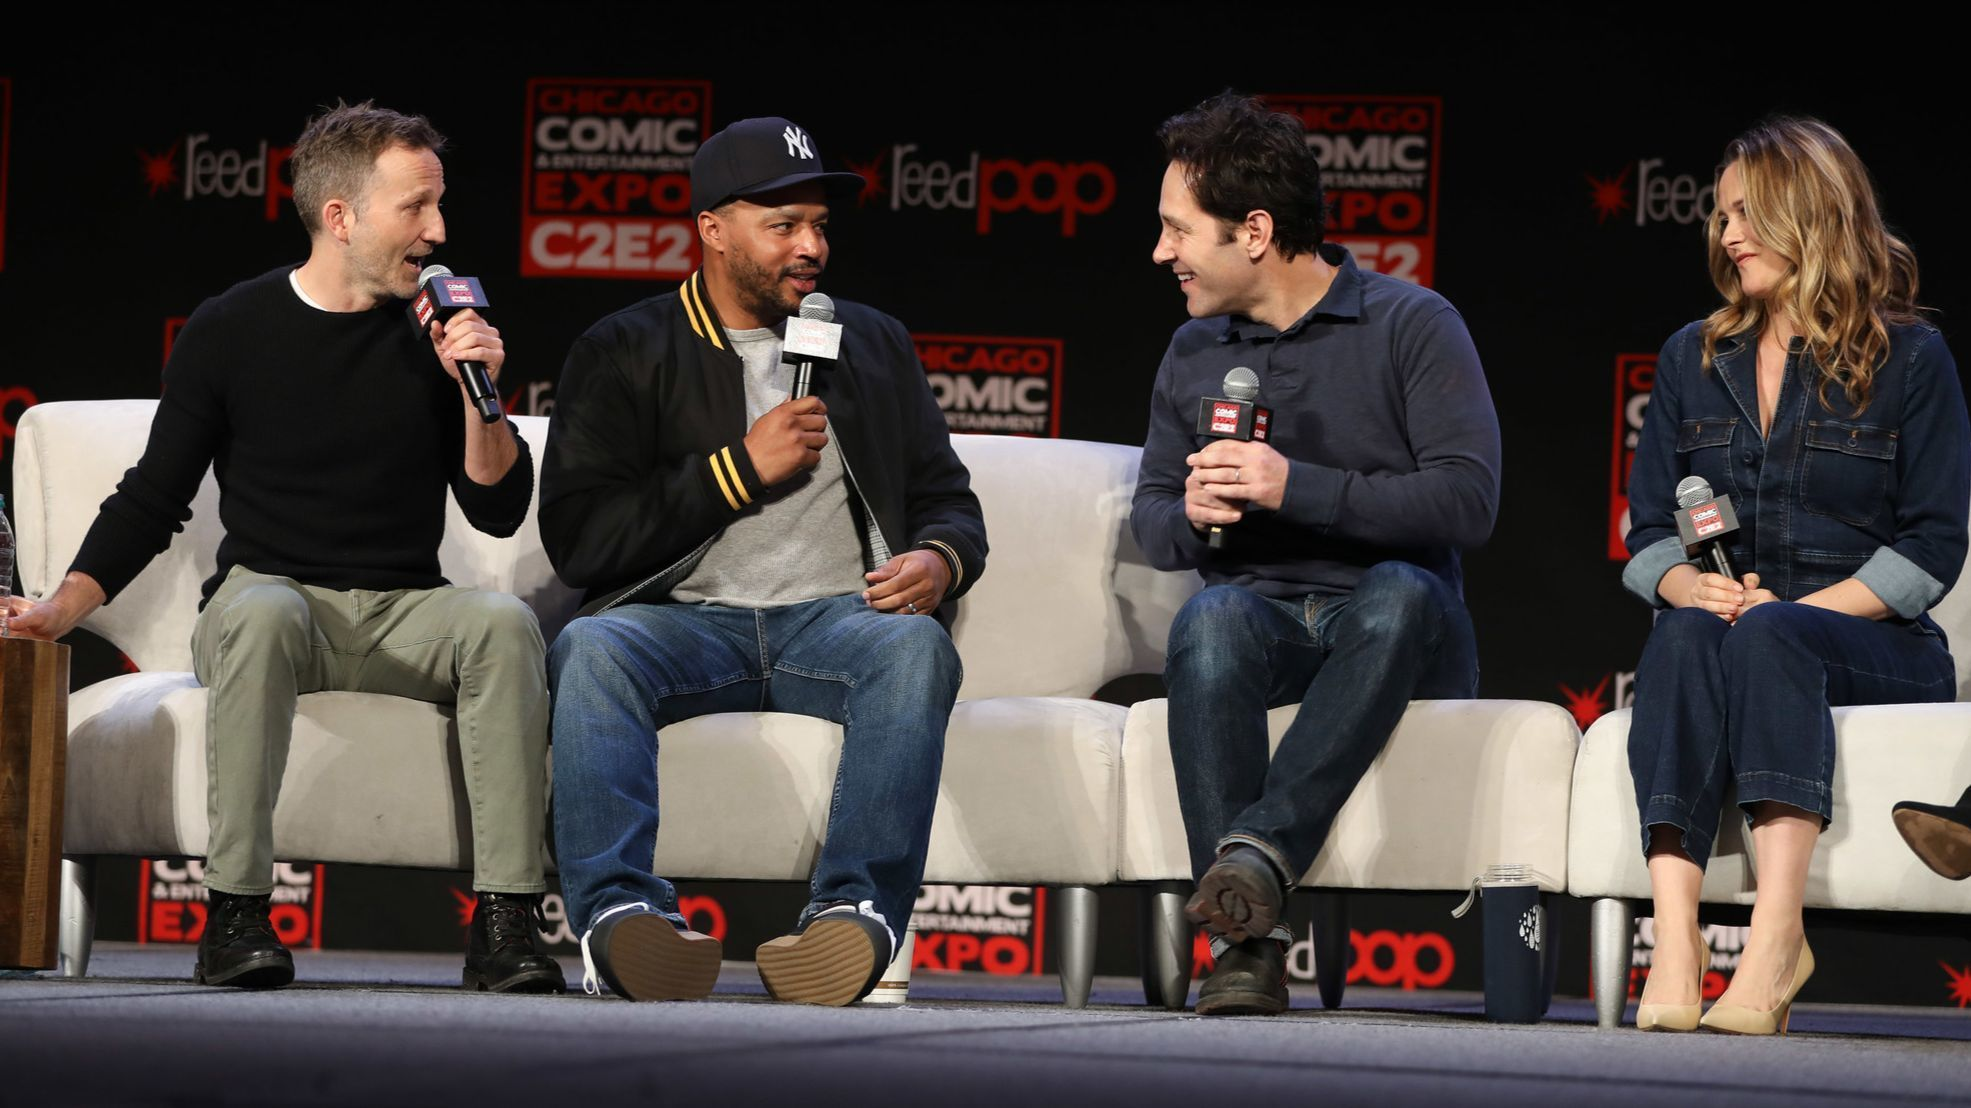 'Clueless' cast reunion at C2E2: Paul Rudd, Alicia Silverstone and friends, just casually hanging out — as if!